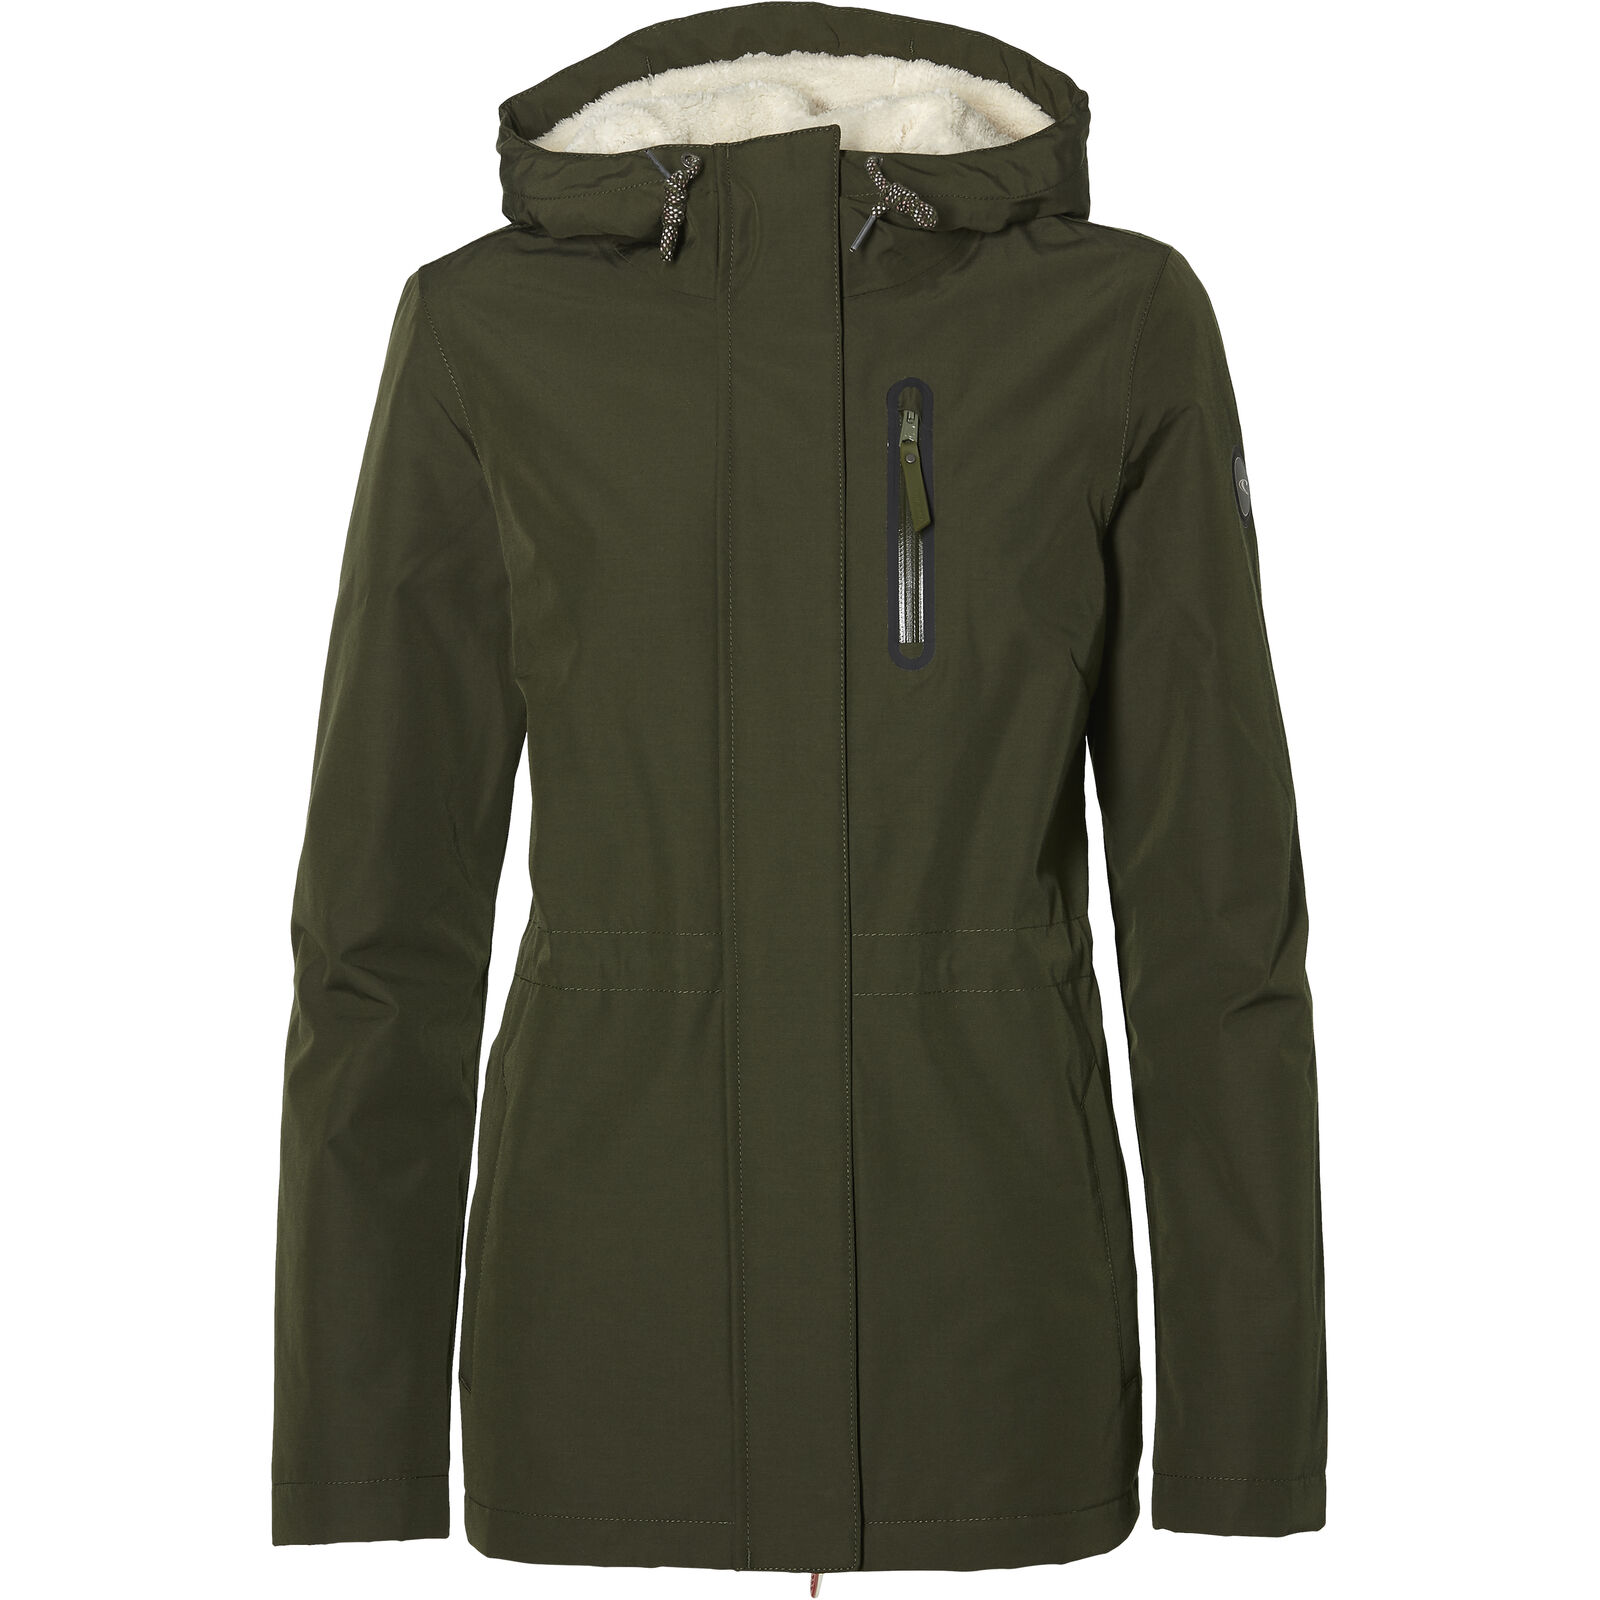 O 'Neill Funzione Giacca Giacca LW WANDERLUST JACKET verde SCURO